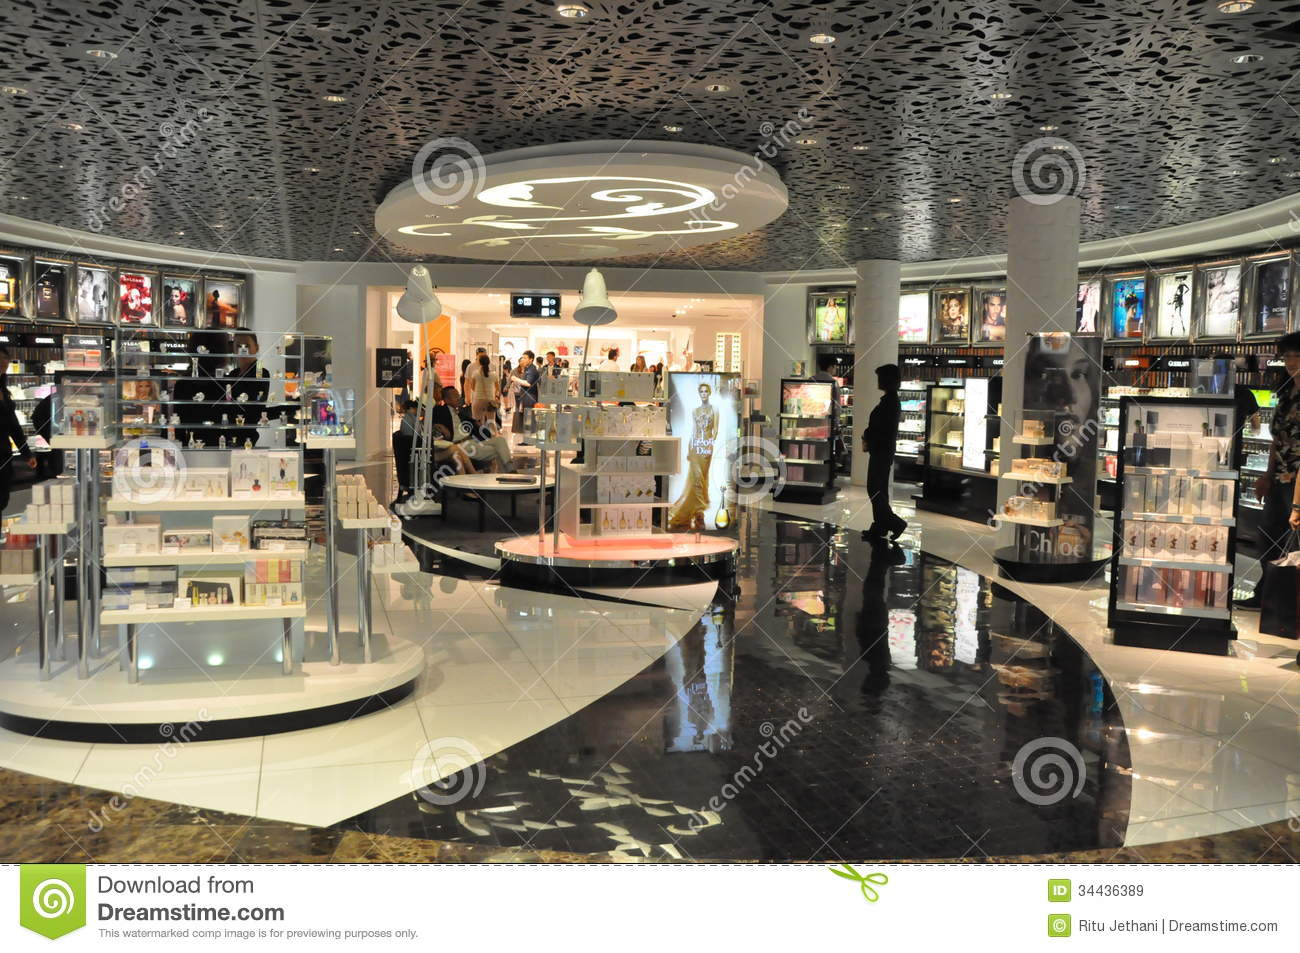 Royalty Free Stock Images Dfs Galleria Waikiki Oahu Hawaii Shopping Mall Multi Level Shopping Center Houses Famous Designer Brands Image34436389 on Famous Perfume Brands